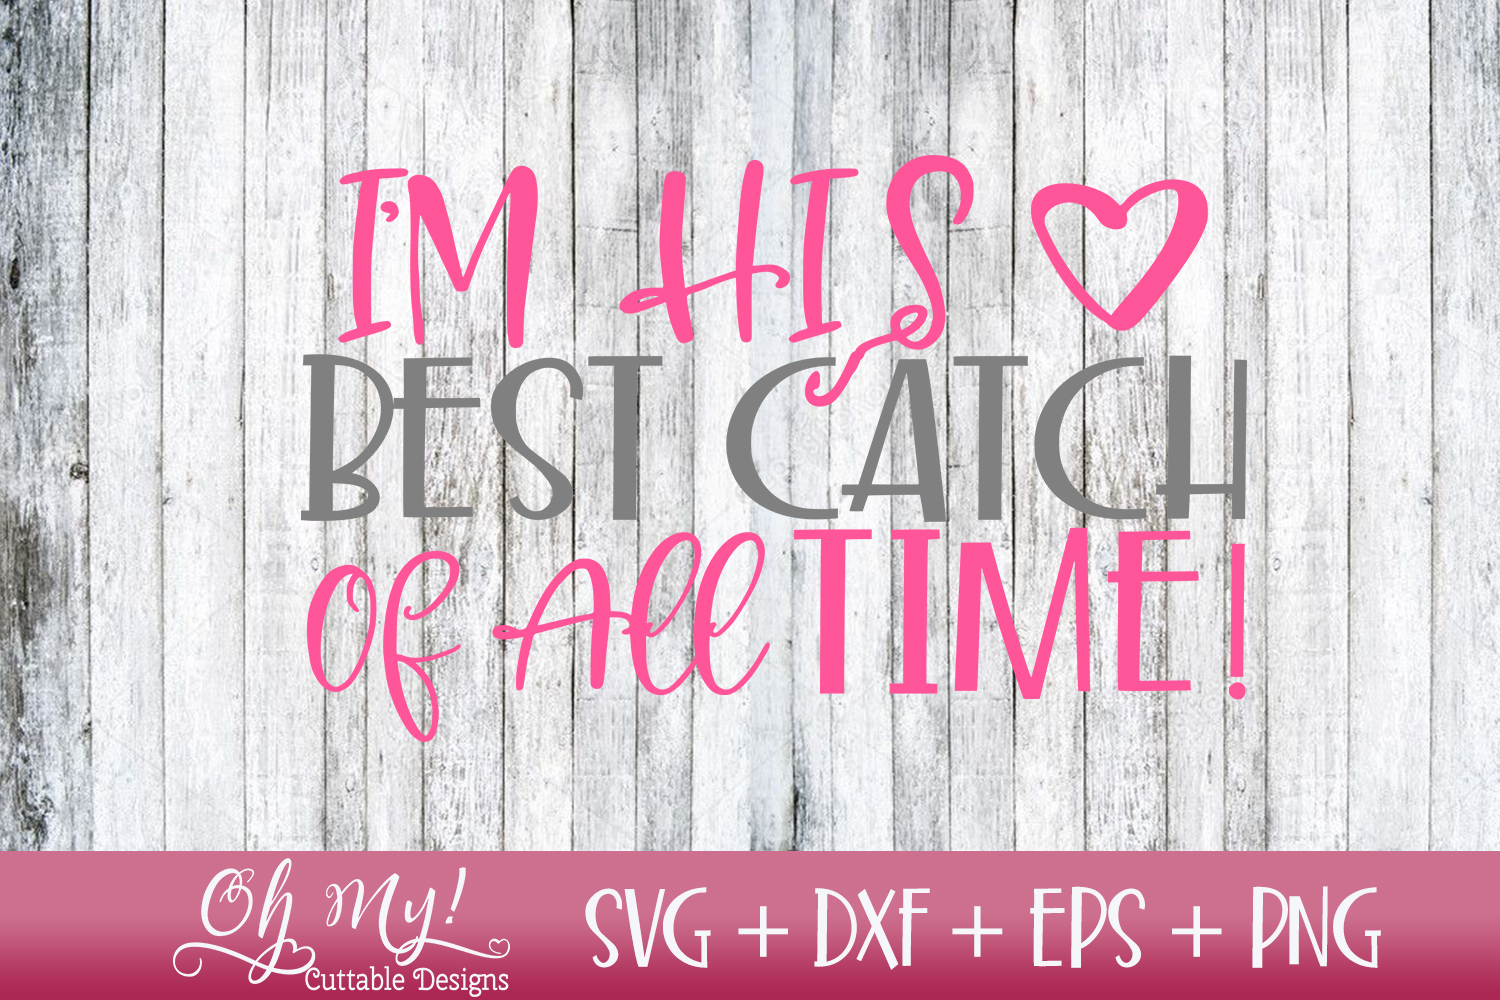 I'm His Best Catch Of All Time - SVG DXF EPS PNG Cutting example image 1